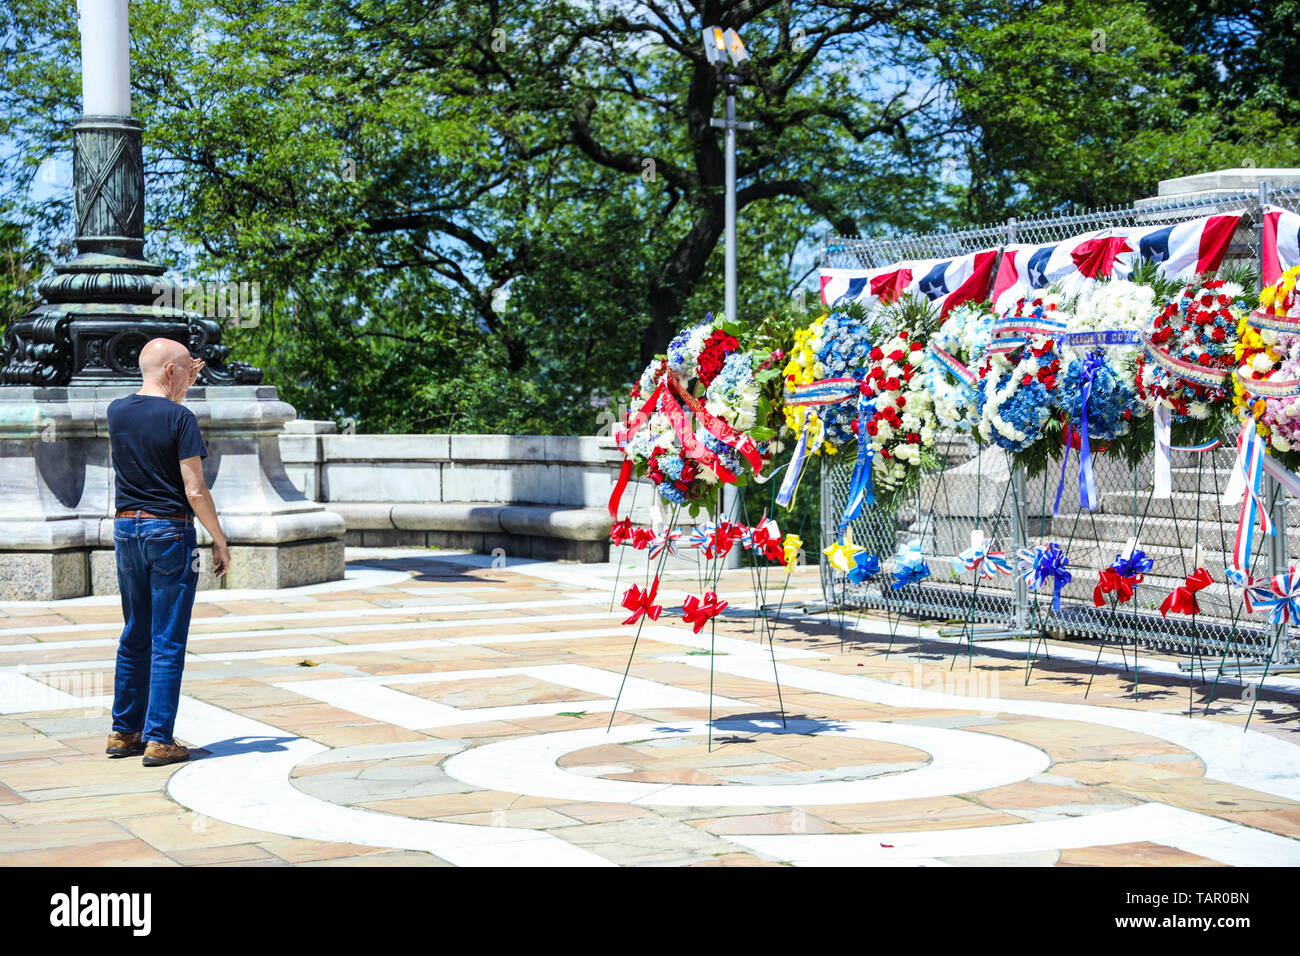 New York, New York, USA. 27th May, 2019. View of the Soldiers and Sailors Monument in Manhattan in New York in the United States this Monday, 27th day that is celebrated Memorial Day. Credit: William Volcov/ZUMA Wire/Alamy Live News Stock Photo